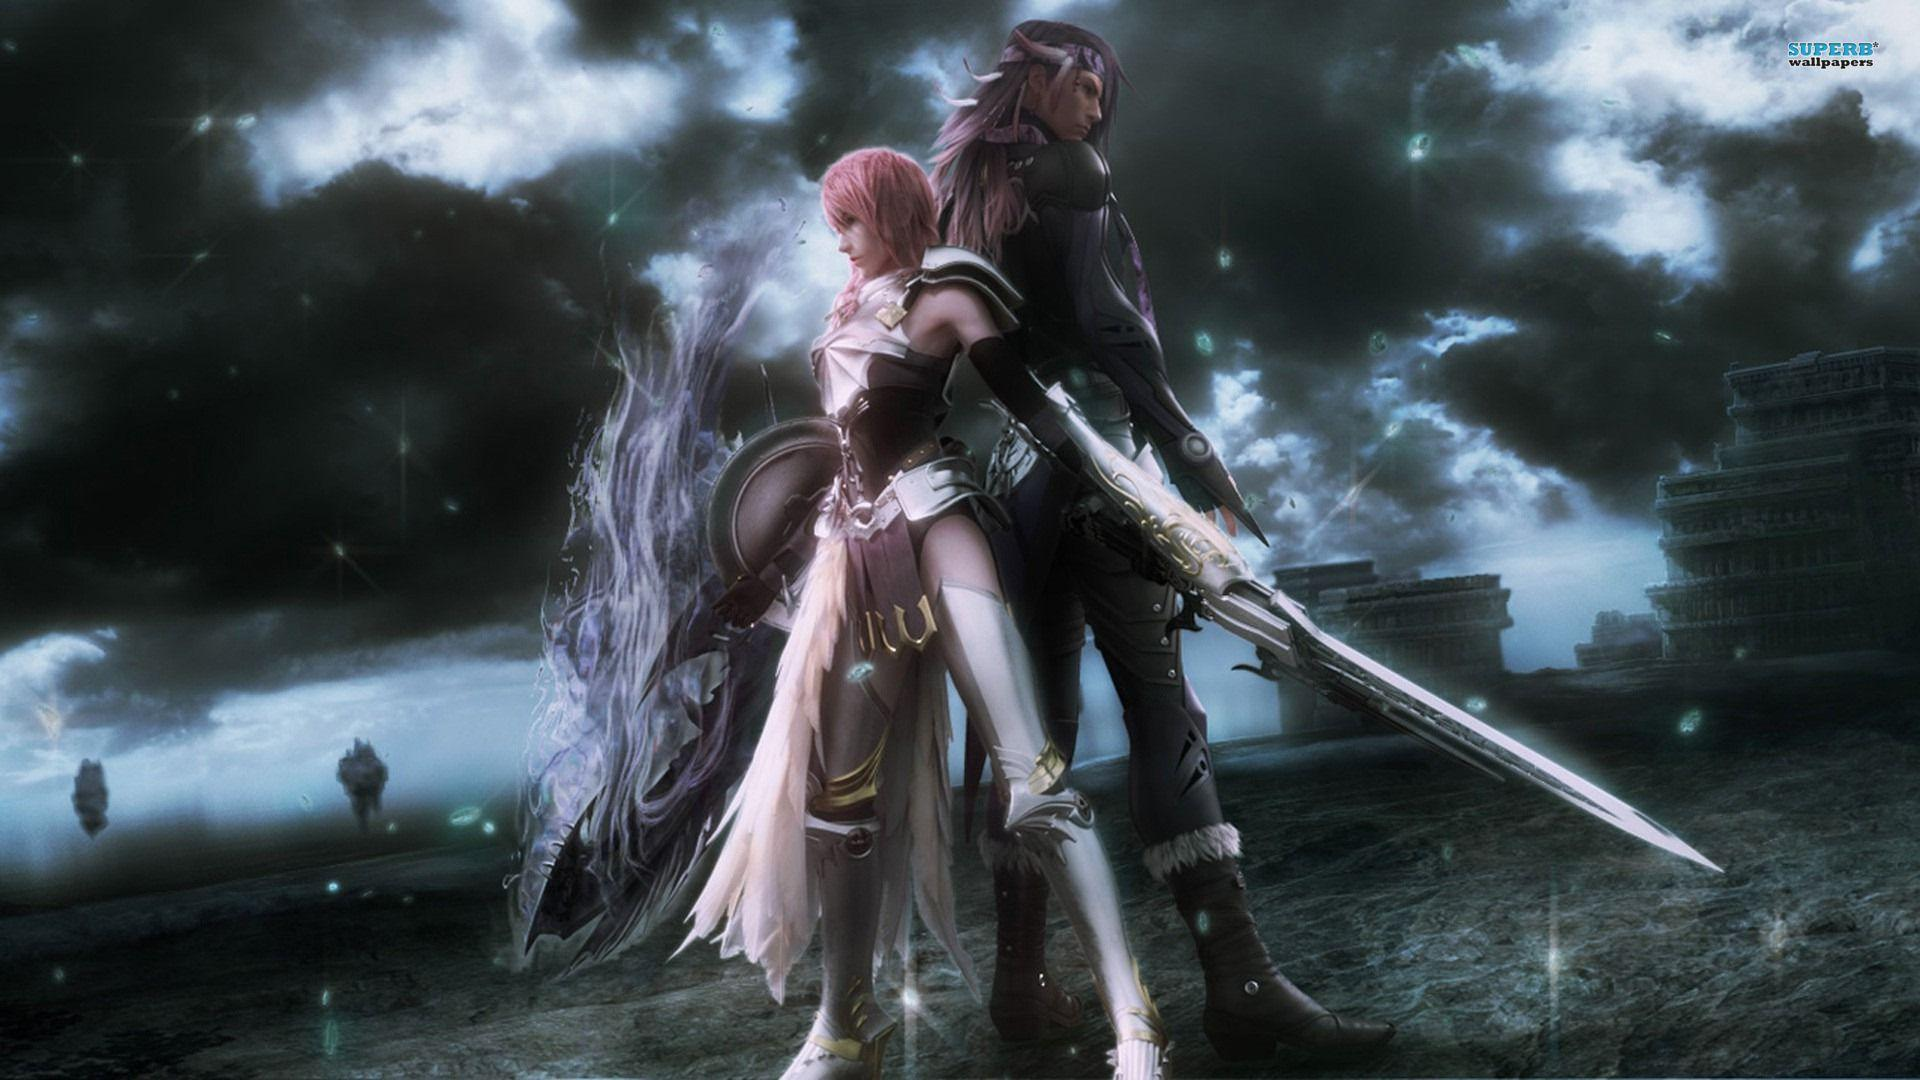 final fantasy xiii-2 wallpapers - wallpaper cave